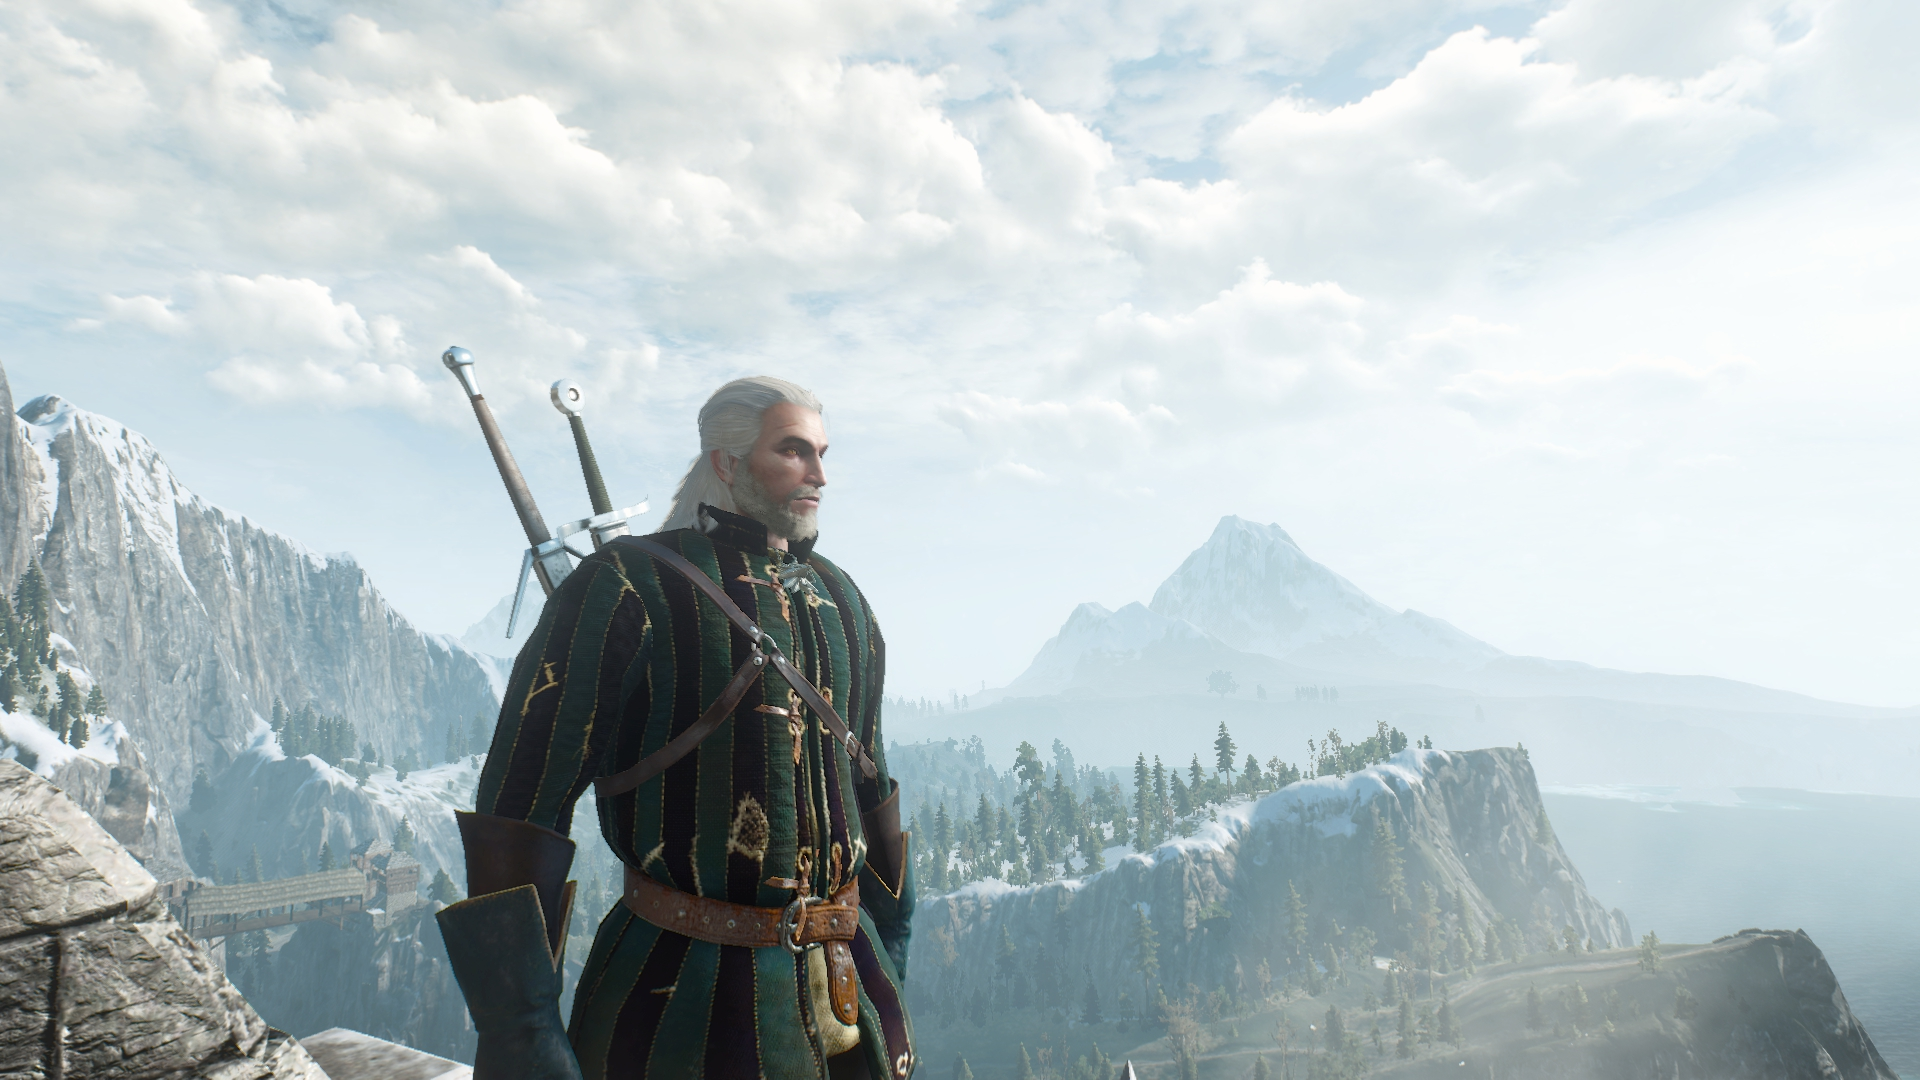 Geralt looks out over the mountains